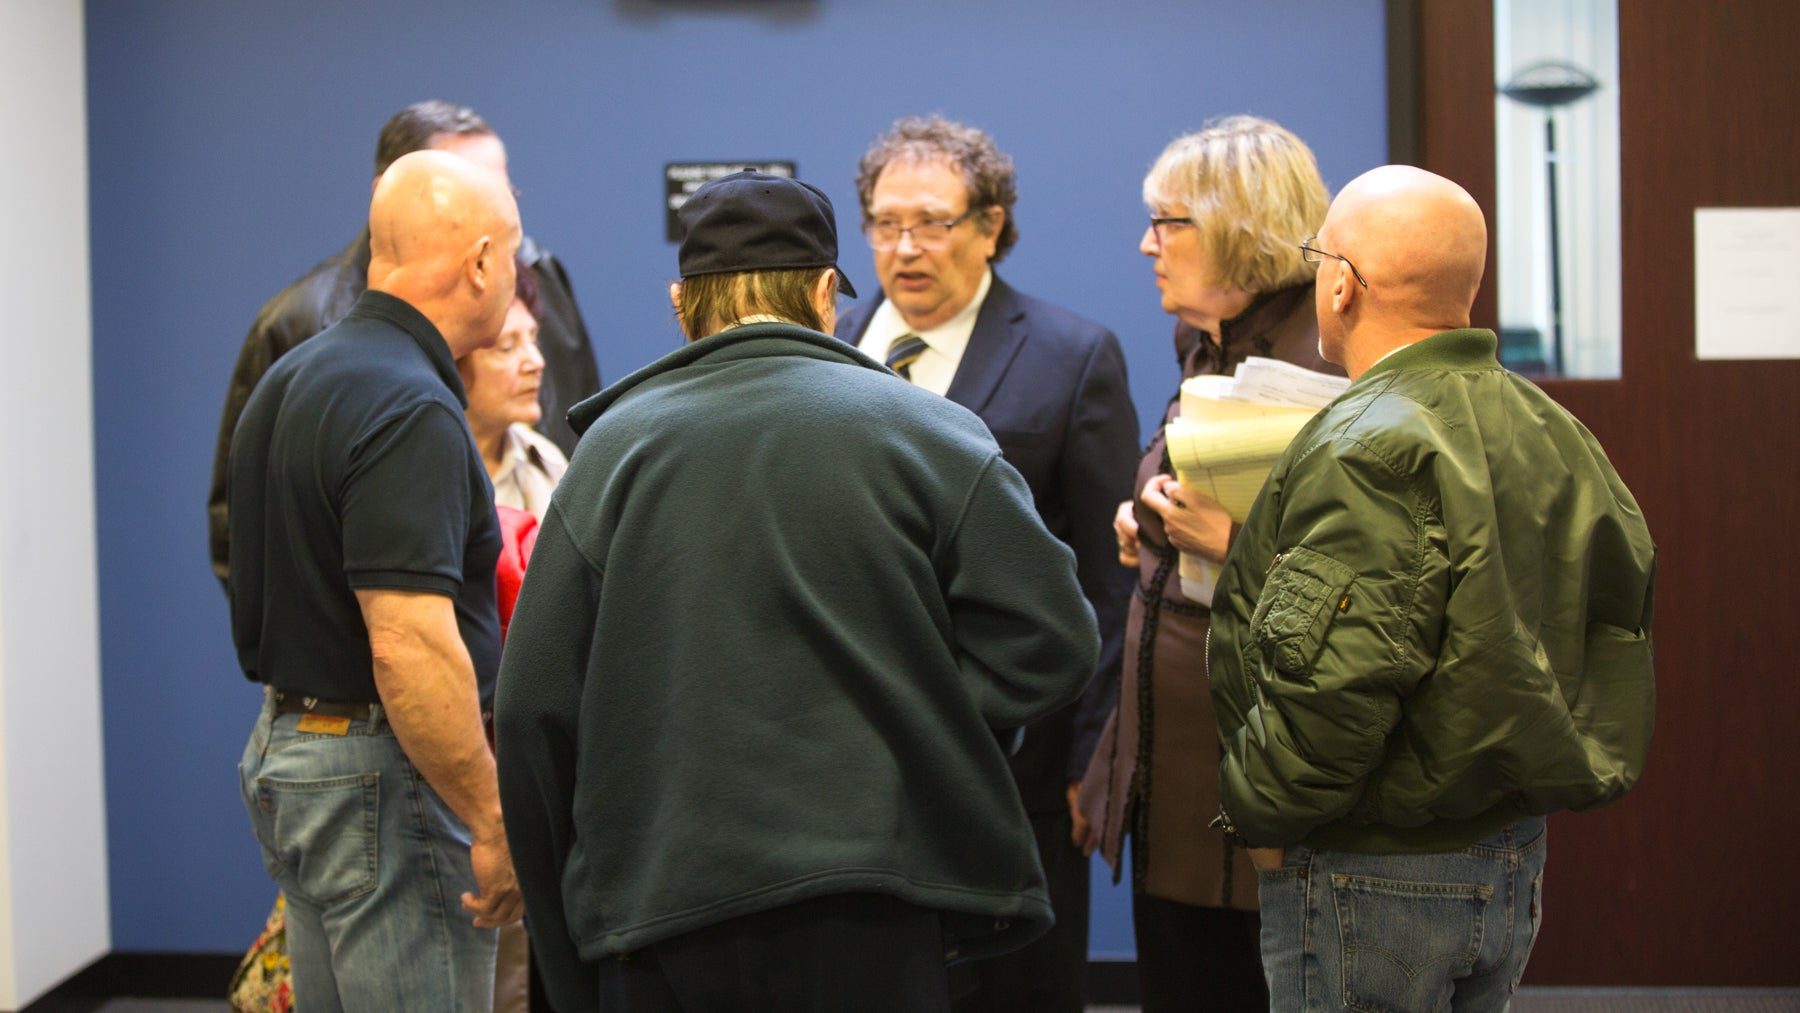 Attorneys for Jay Procopio (right, green jacket) meet with his family after a hearing in Middlesex Superior Court. From back, in suit, attorneys Robert Bloomenthal and Sandra Bloomenthal, Jay Procopio, Procopio's father Joseph Procopio, an unidentified man, Procopio's stepfather, and Procopio's mother, Marie.